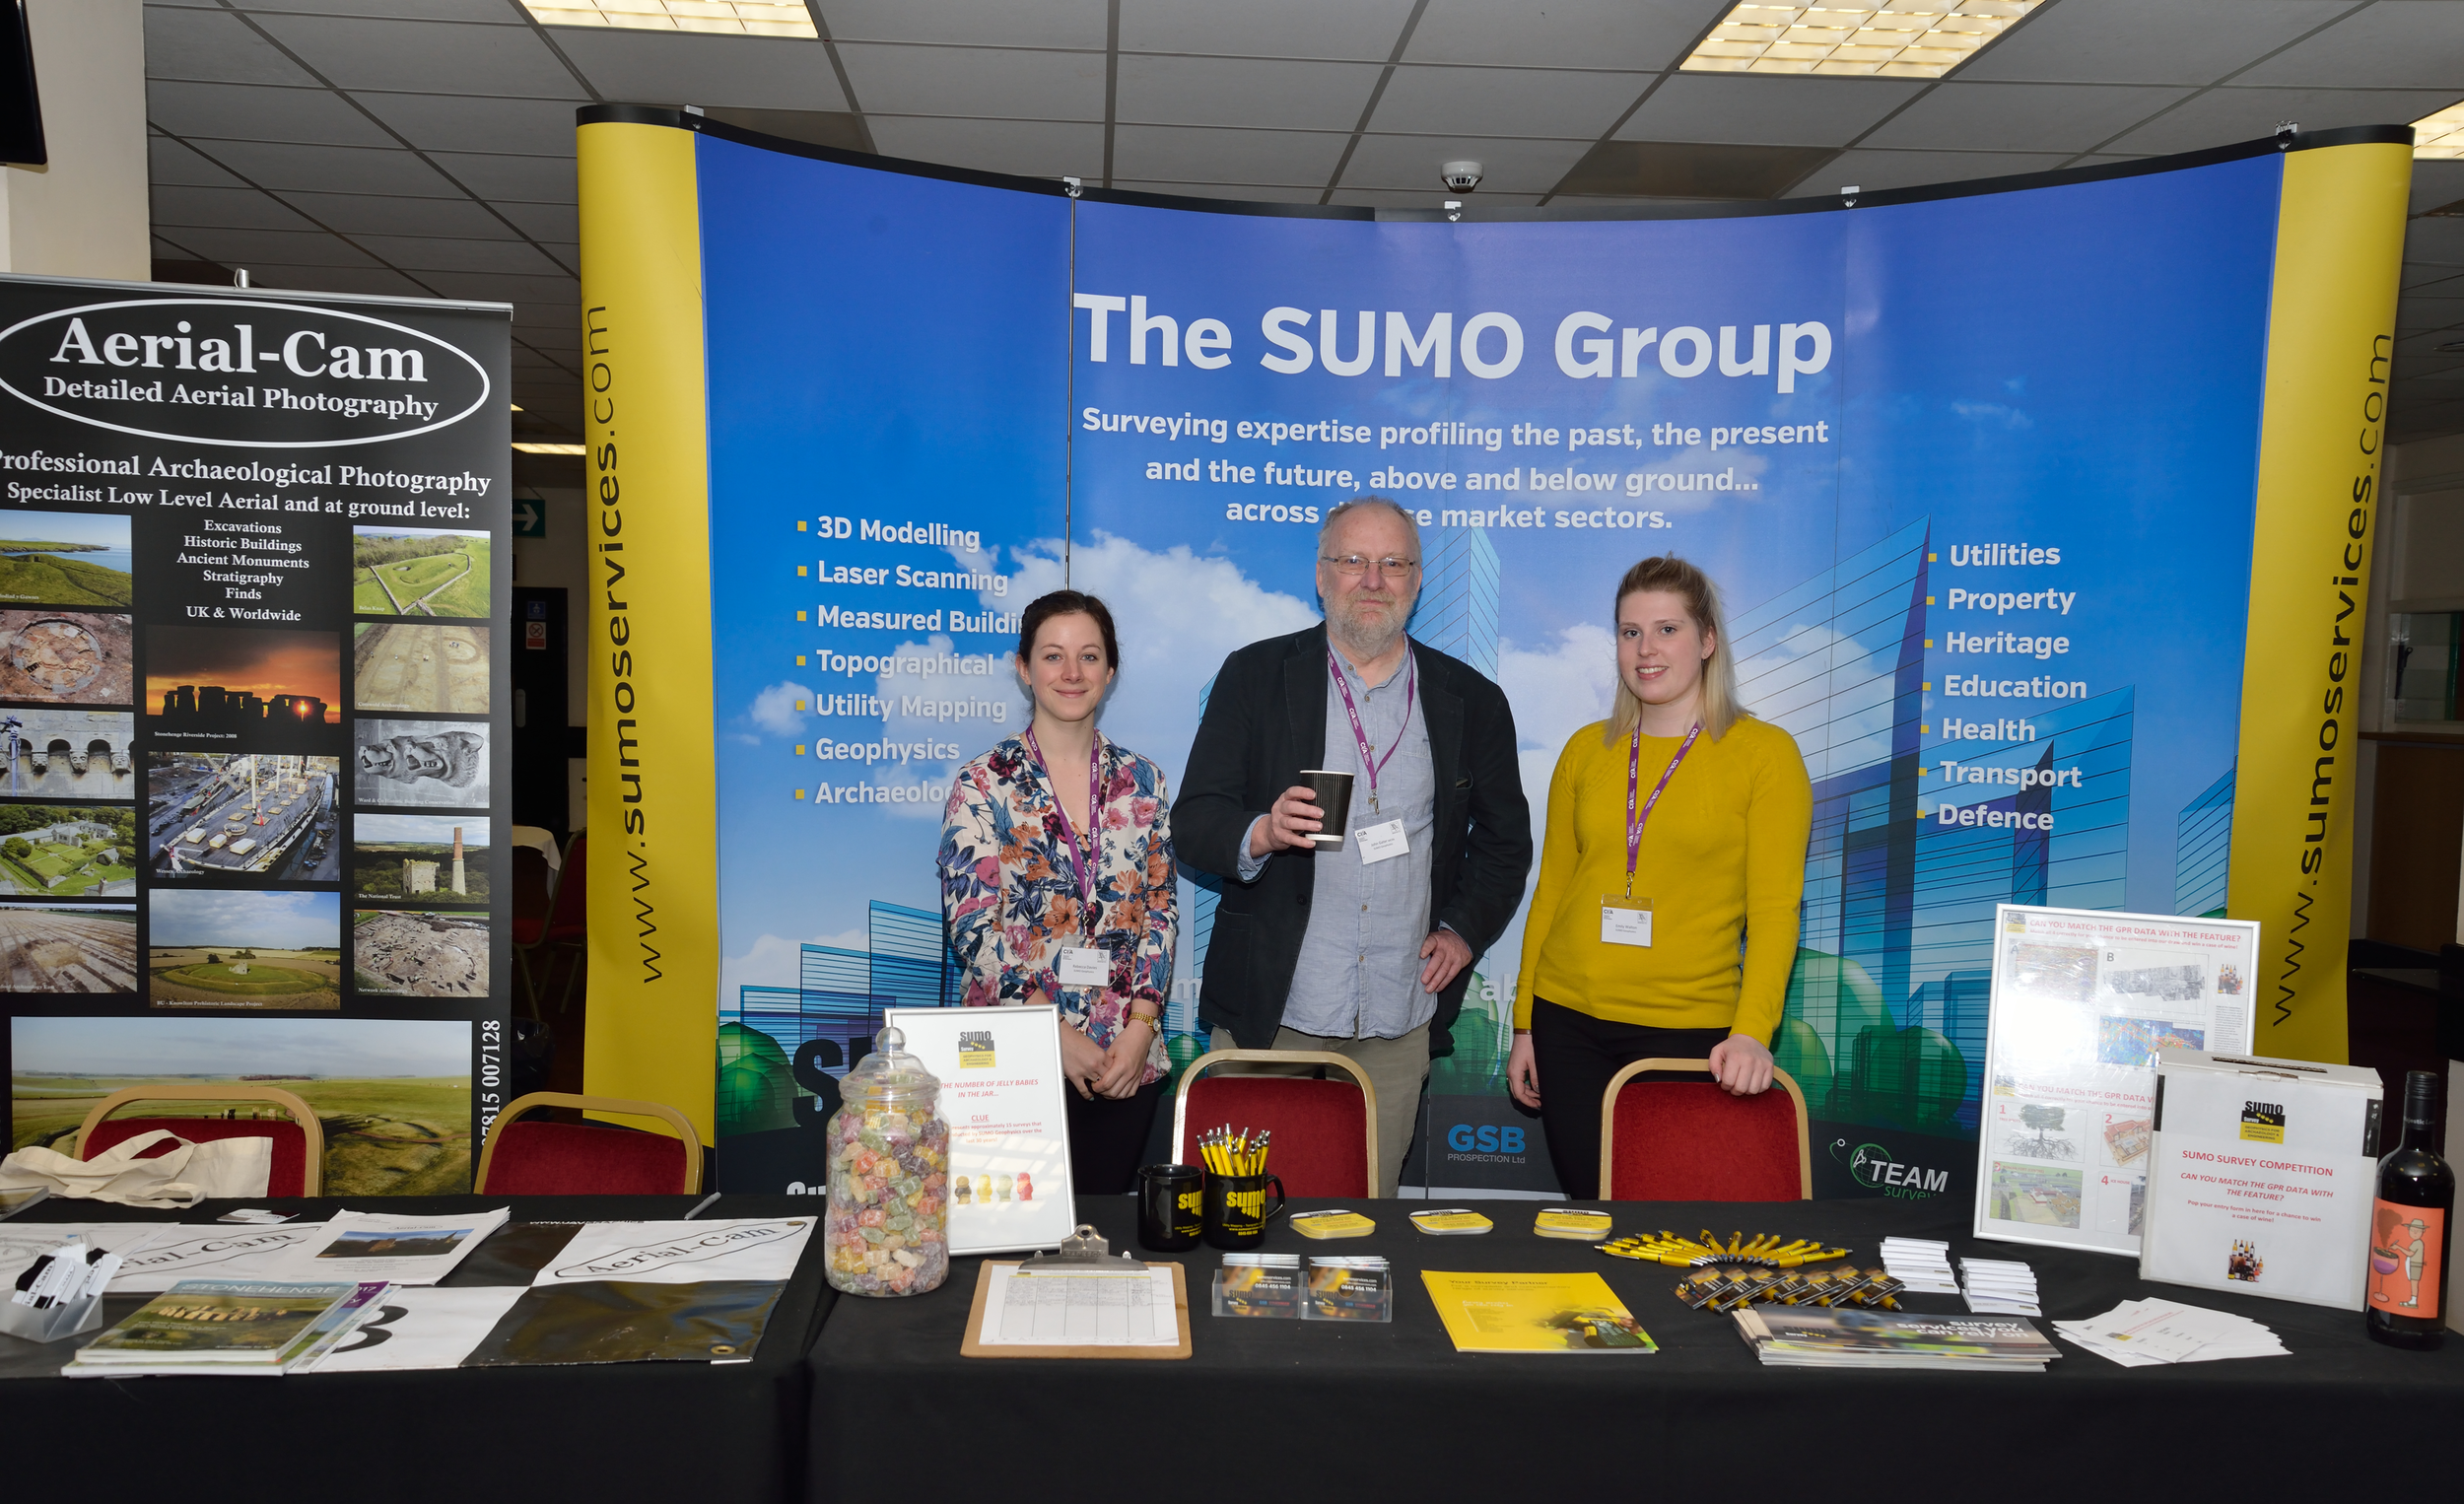 The SUMO Geophysics team ready at their stand. Left to right: Becky Davies, Dr John Gater, Emily Walton.